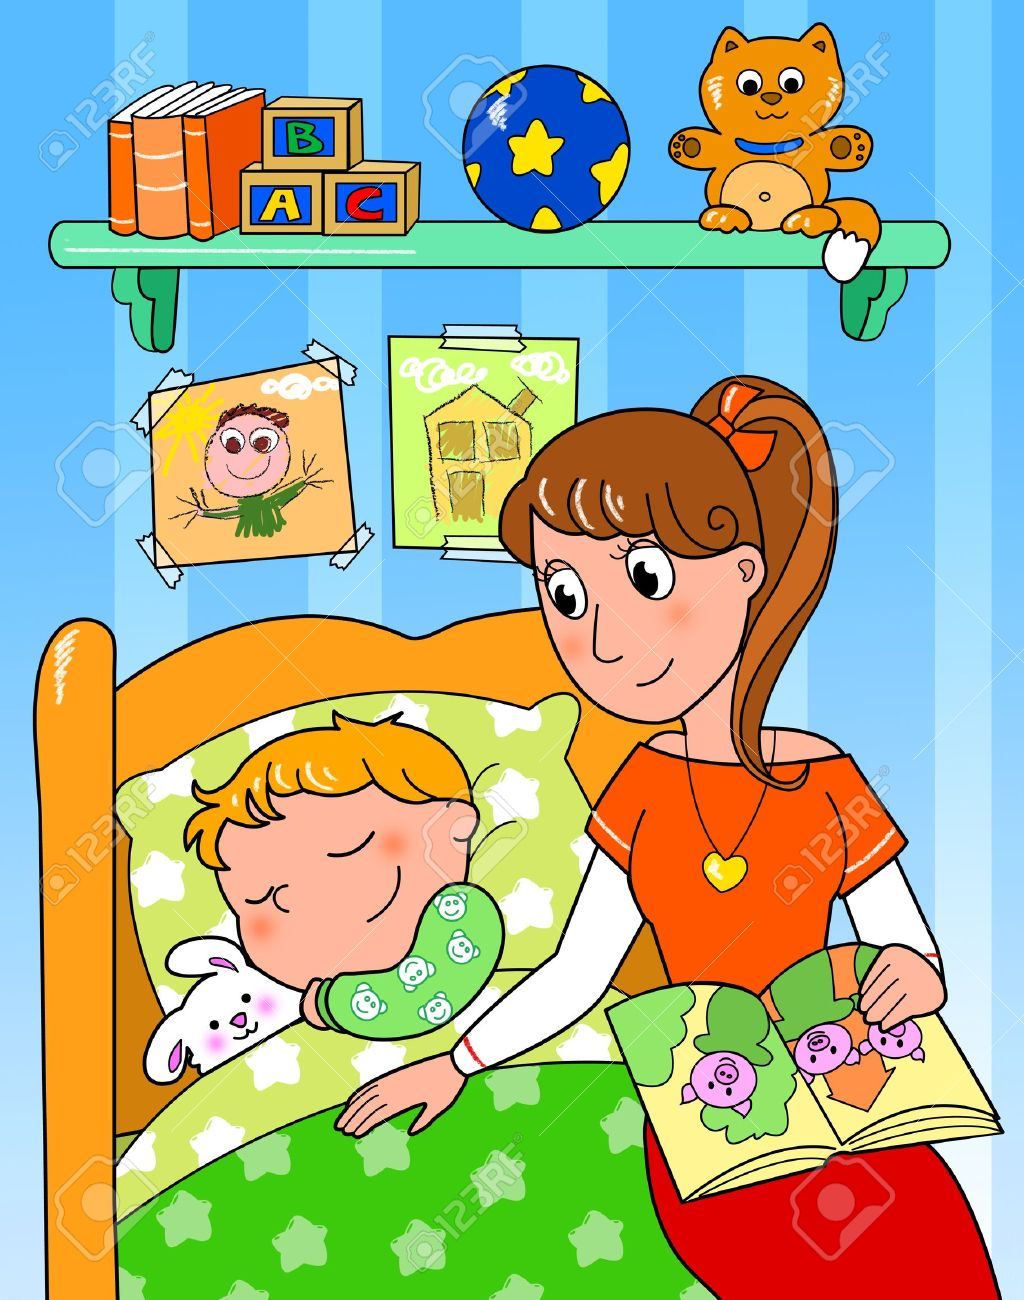 Cute child sleeping in bed with mom, digital illustration - 13681249